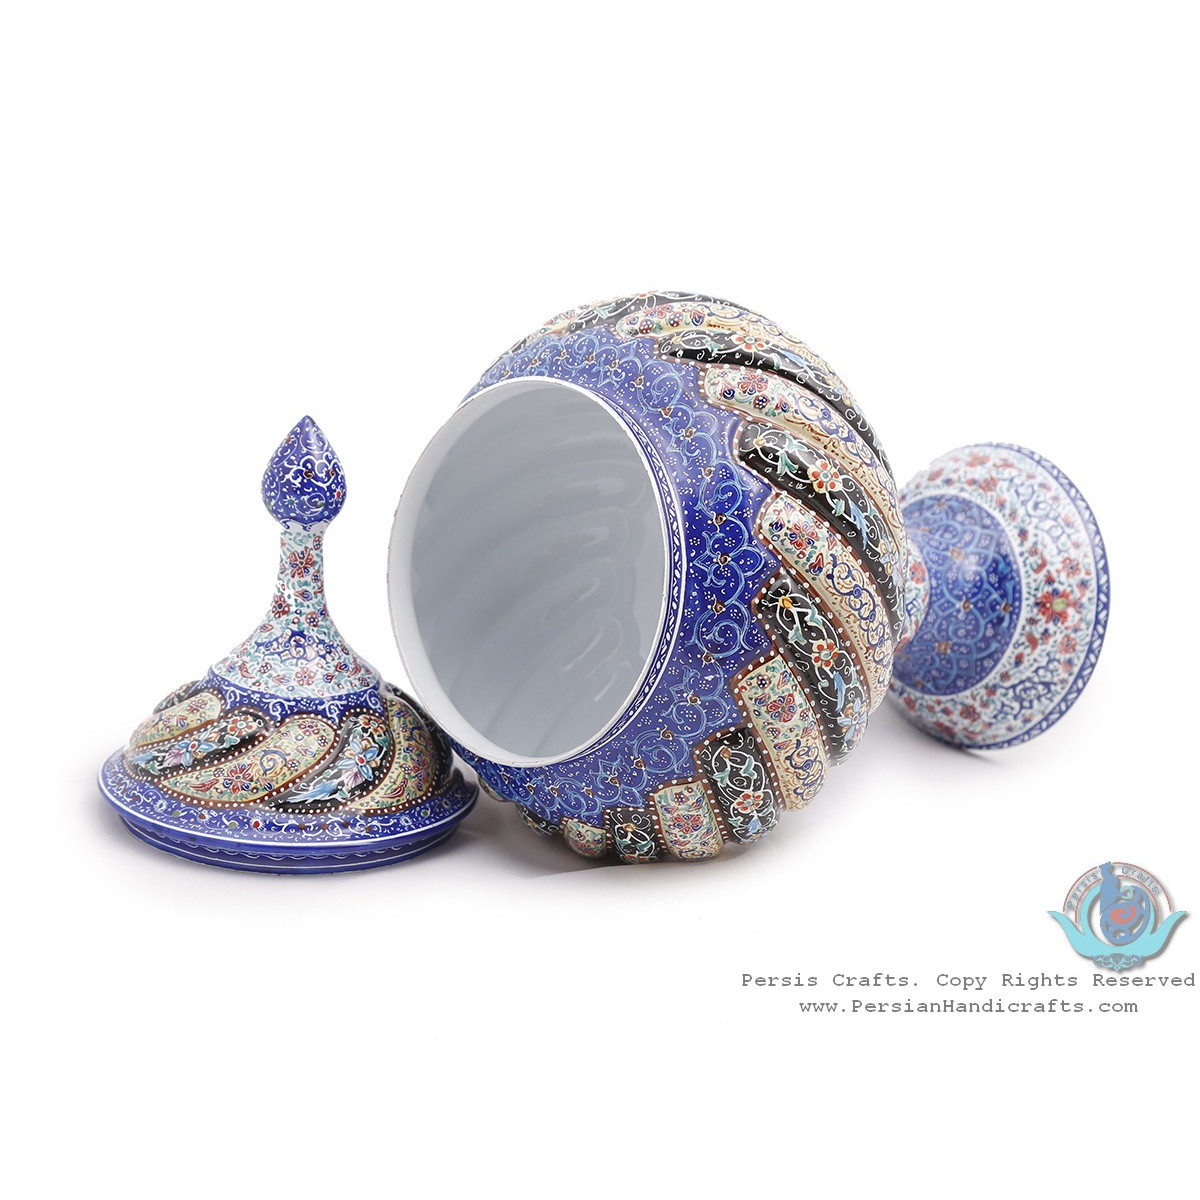 Privileged Enamel Toranj Minakari Pedestal Bowl with Lid - HE3917-Persian Handicrafts